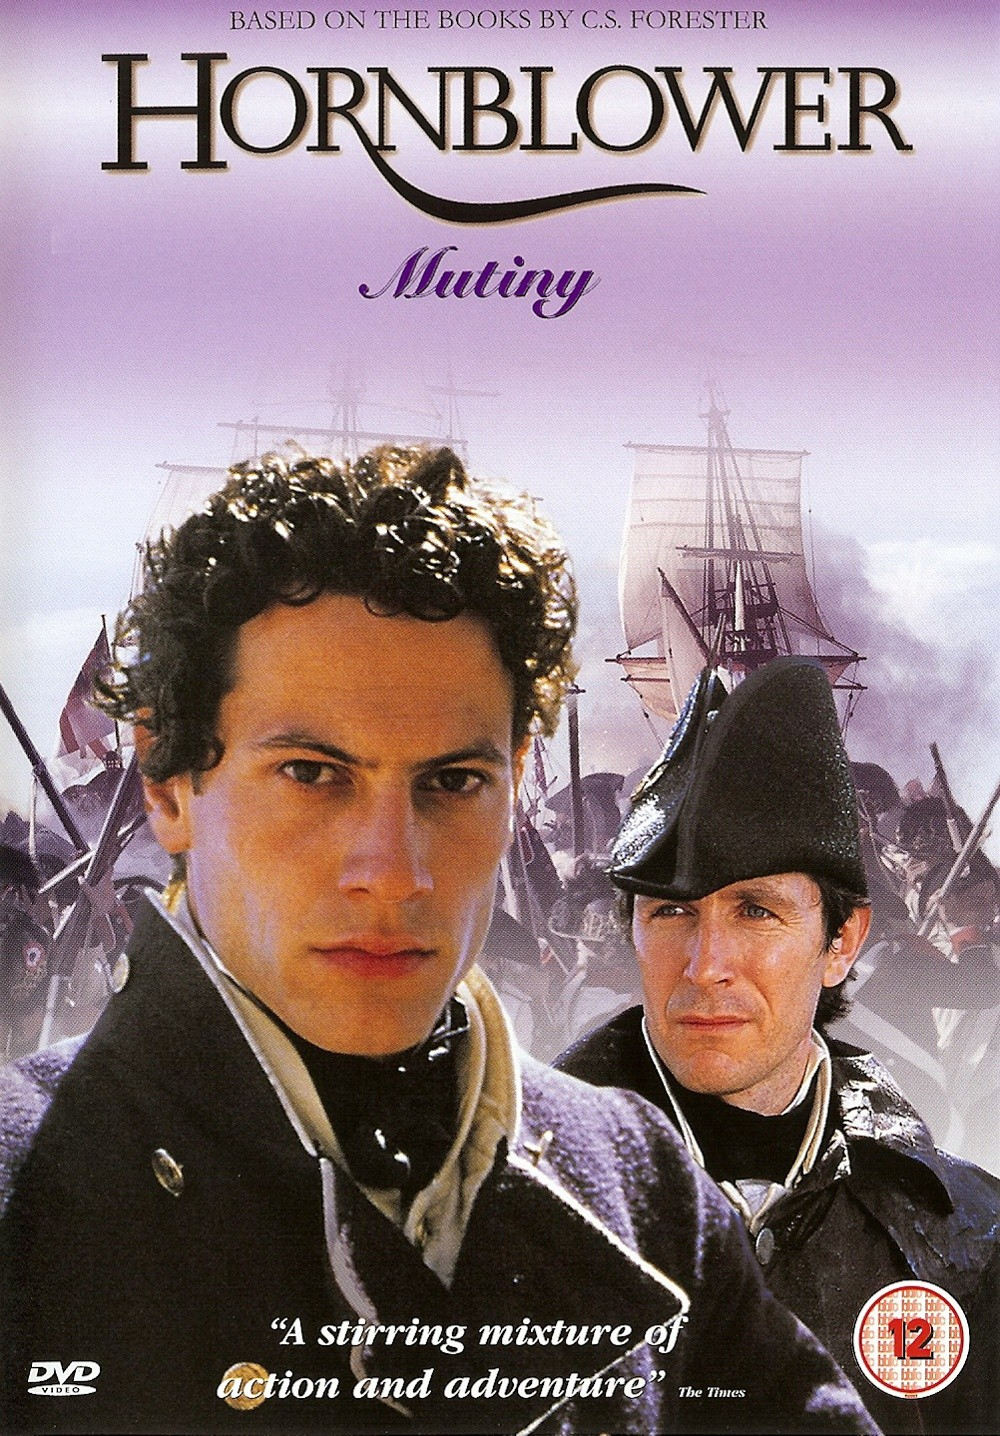 hornblower-mutiny-original